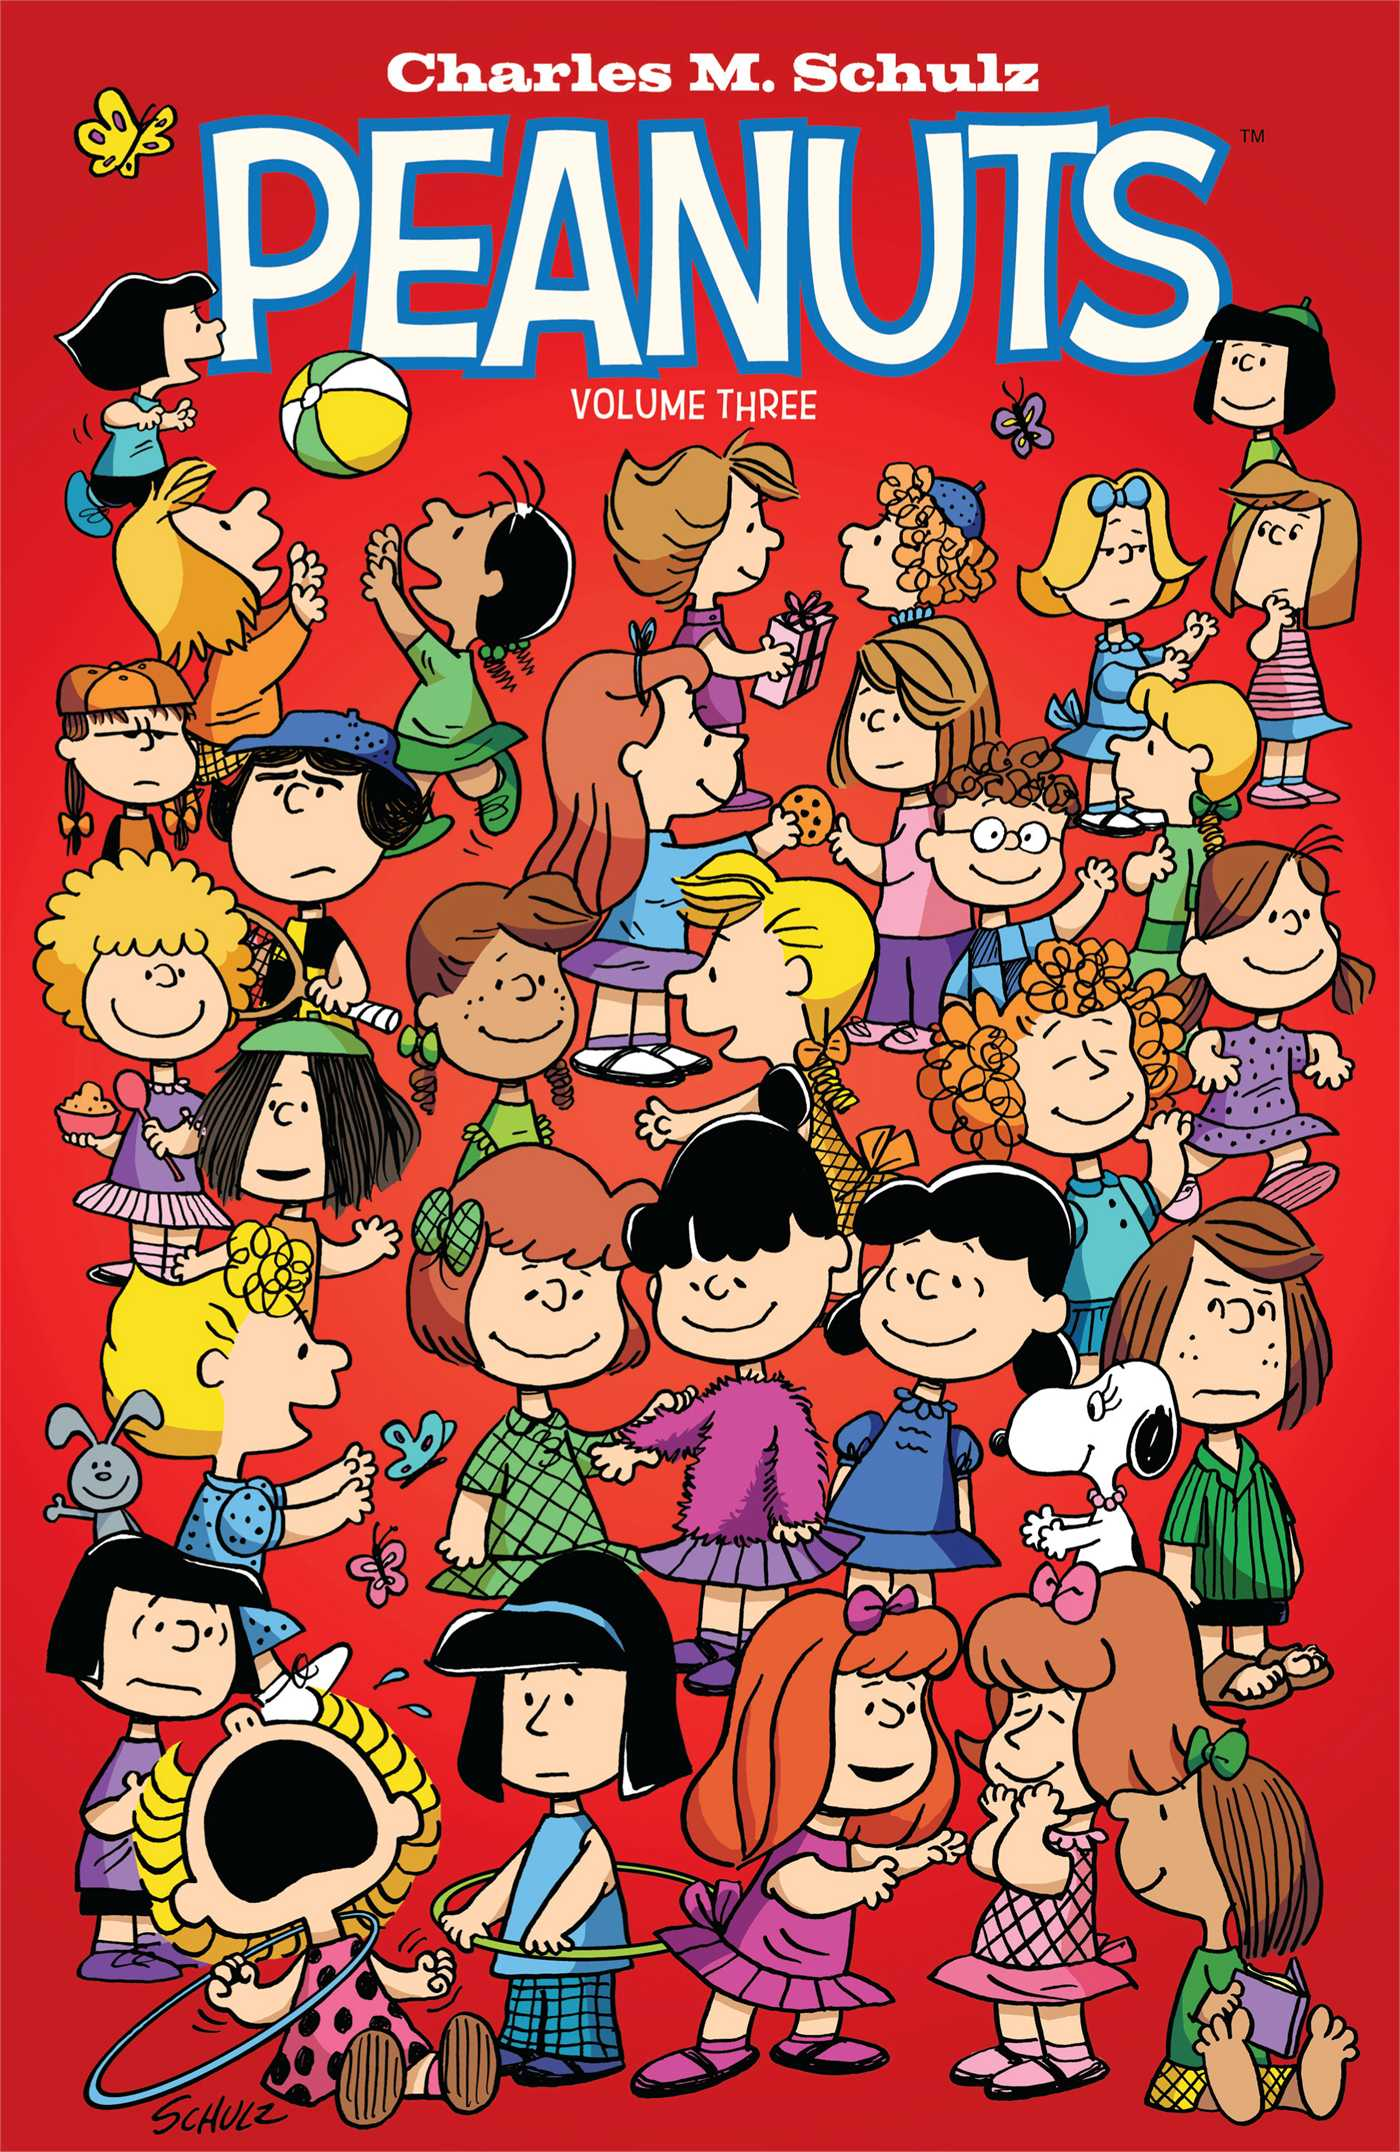 Peanuts-vol-3-9781608863570_hr